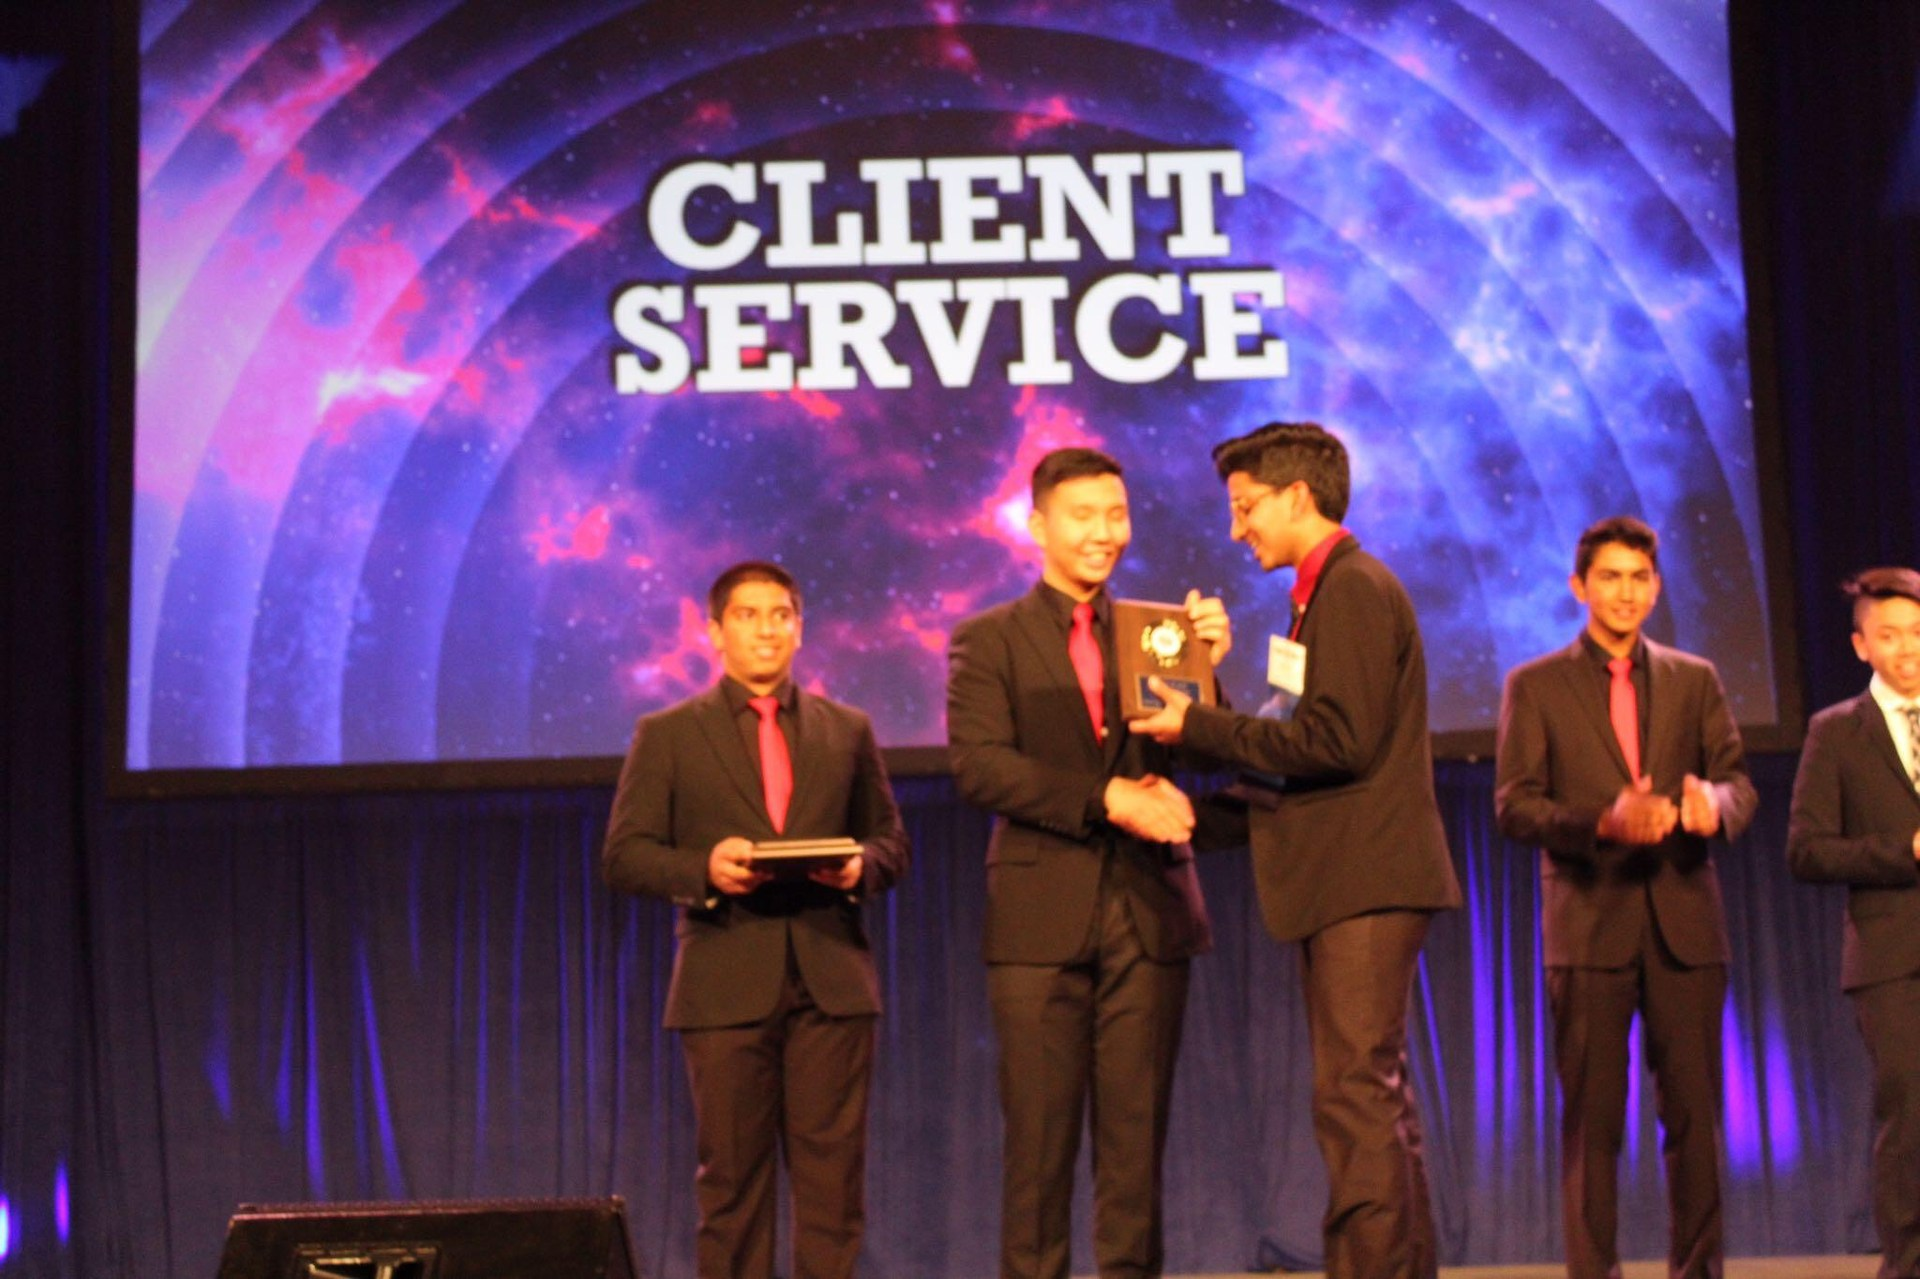 FBLA State Leadership Conference Sacramento Client Service 3rd place winner